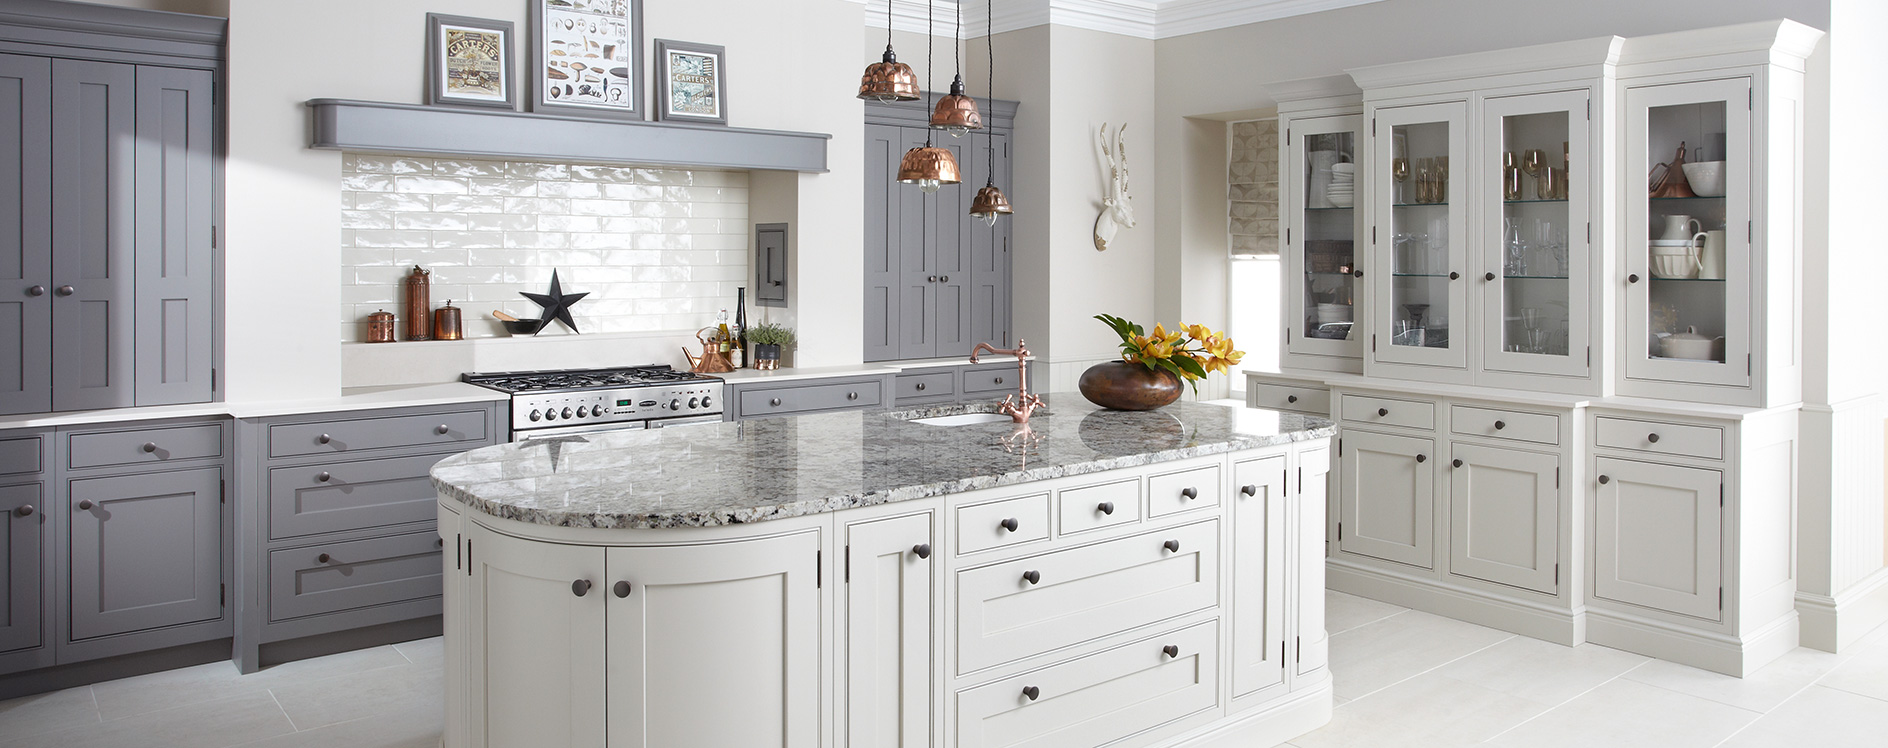 Kitchens wickes enchanting home design for New trends in kitchen design